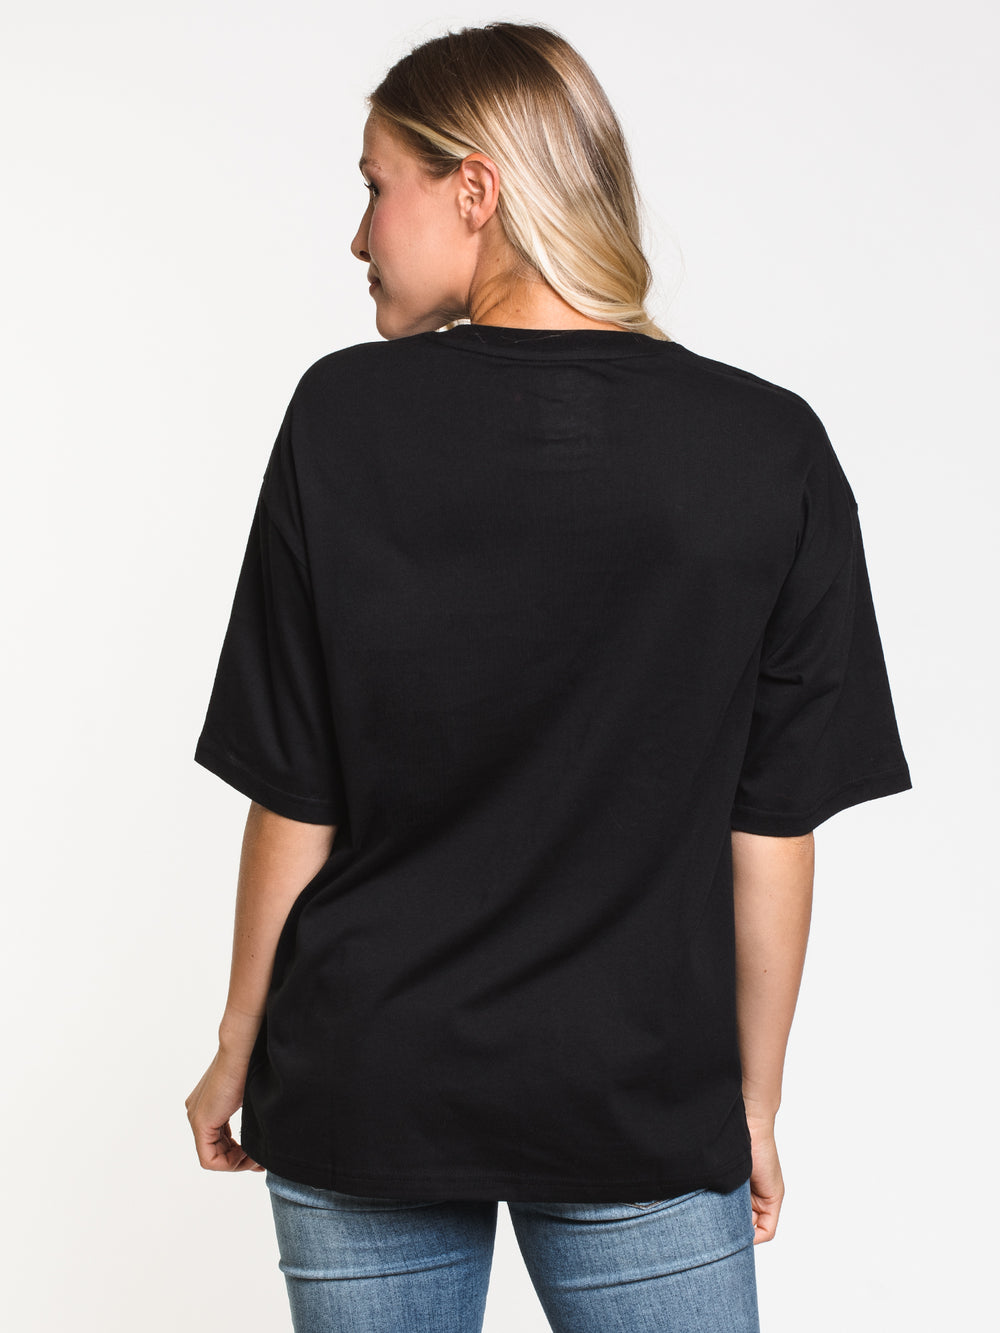 WOMENS NB VIL STACKED SHORT SLEEVE T-SHIRT - BLACK